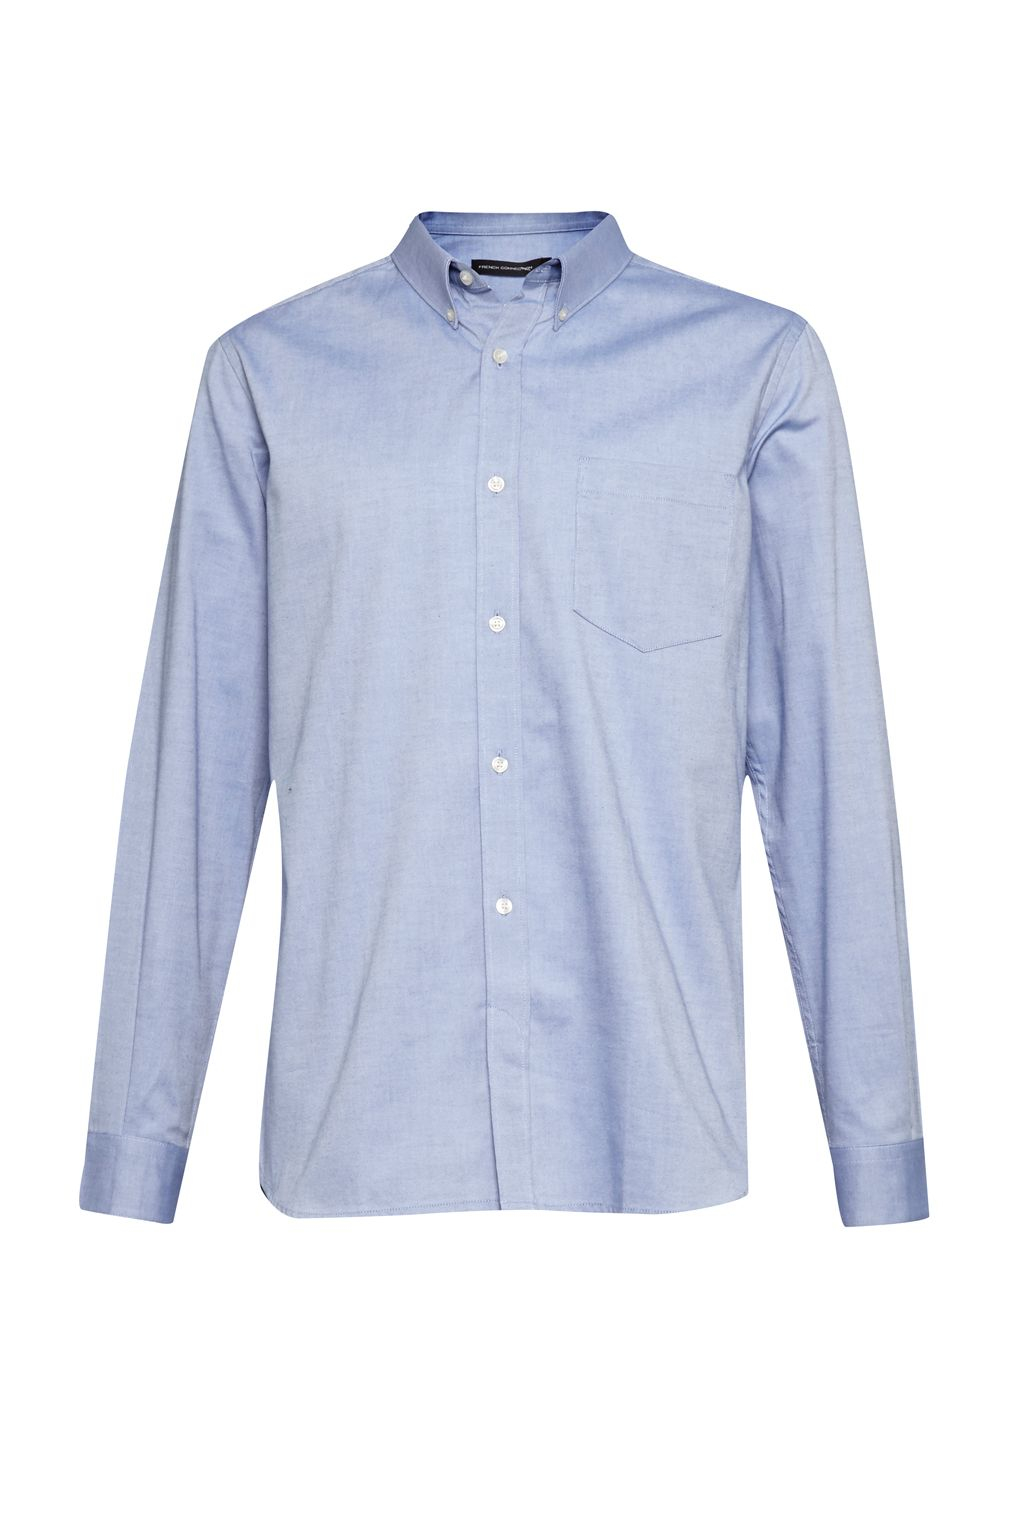 French connection co washed oxford shirt in blue for men for French blue oxford shirt